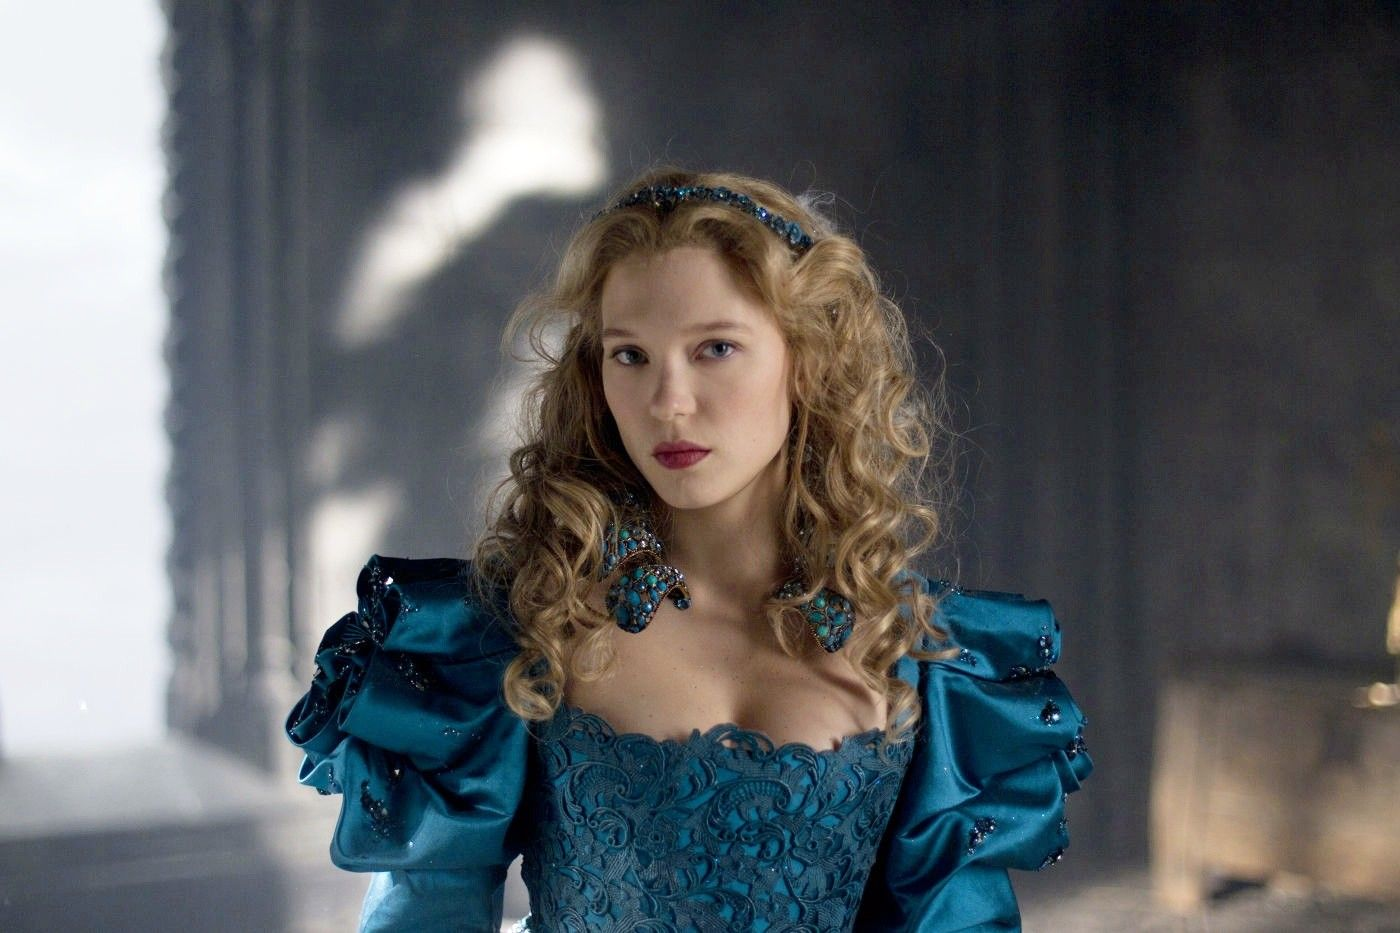 Lea Seydoux as Belle in Beauty and the Beast (2014)